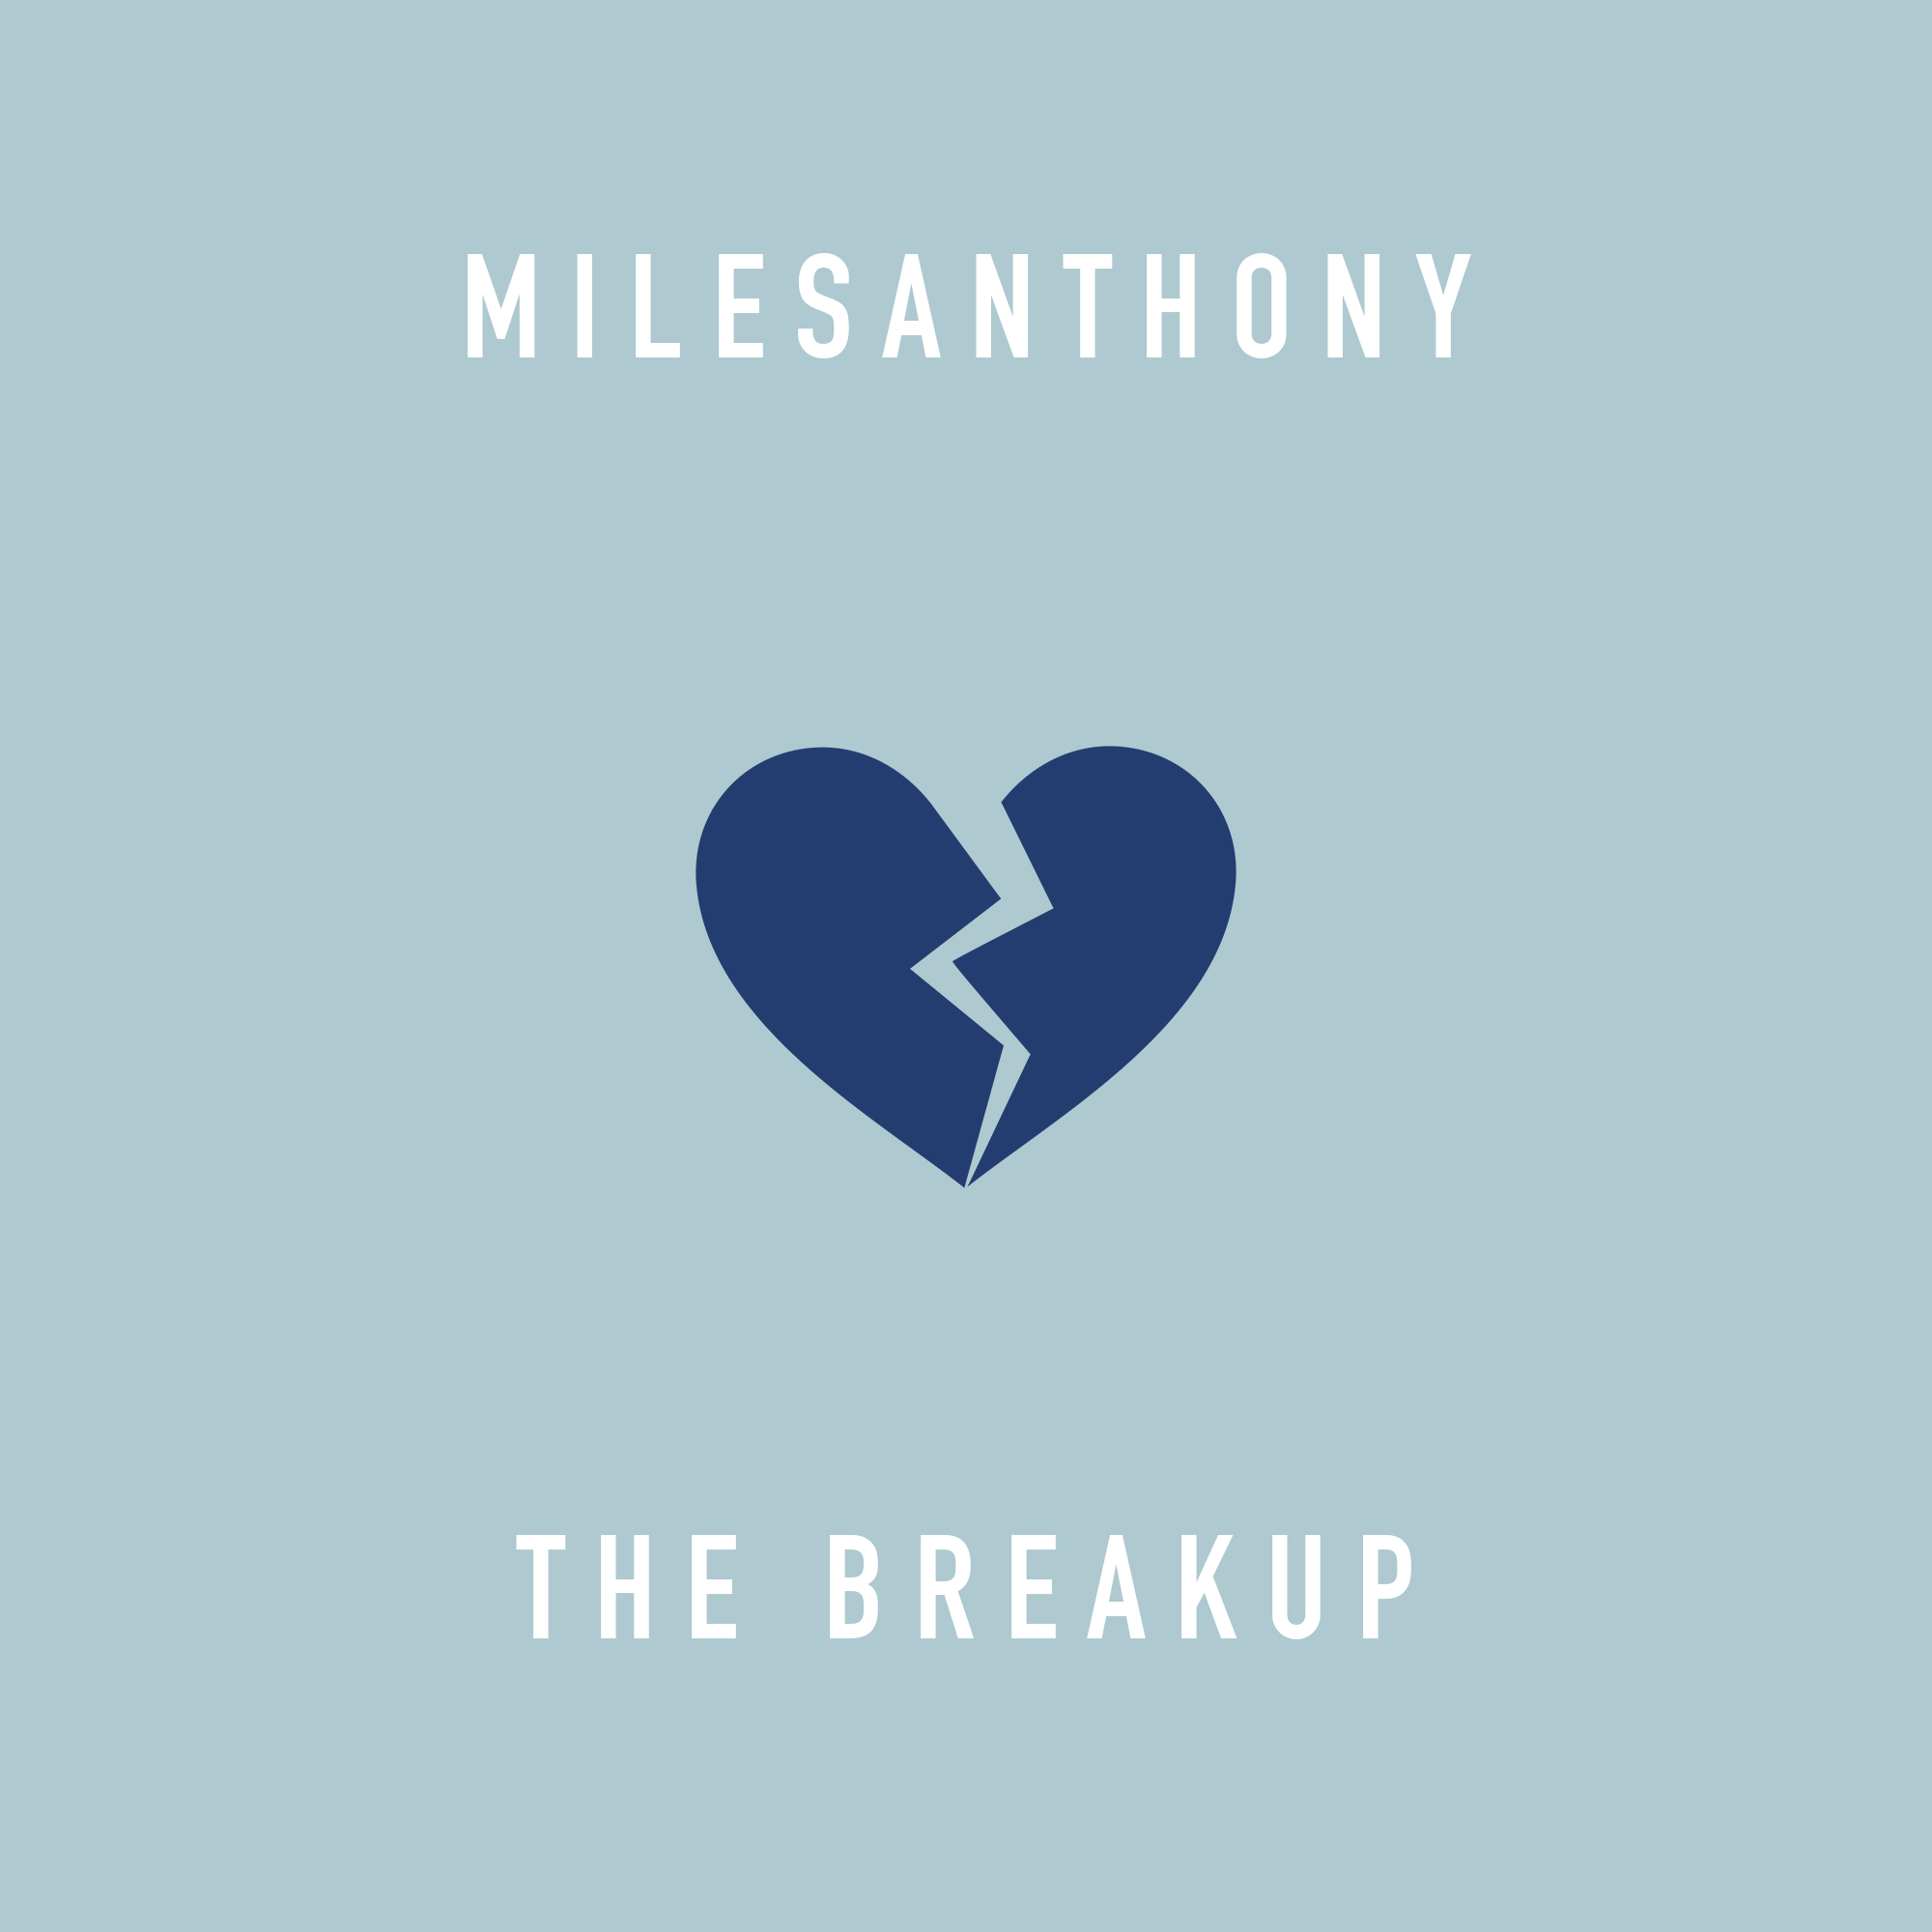 The-Breakup_v2